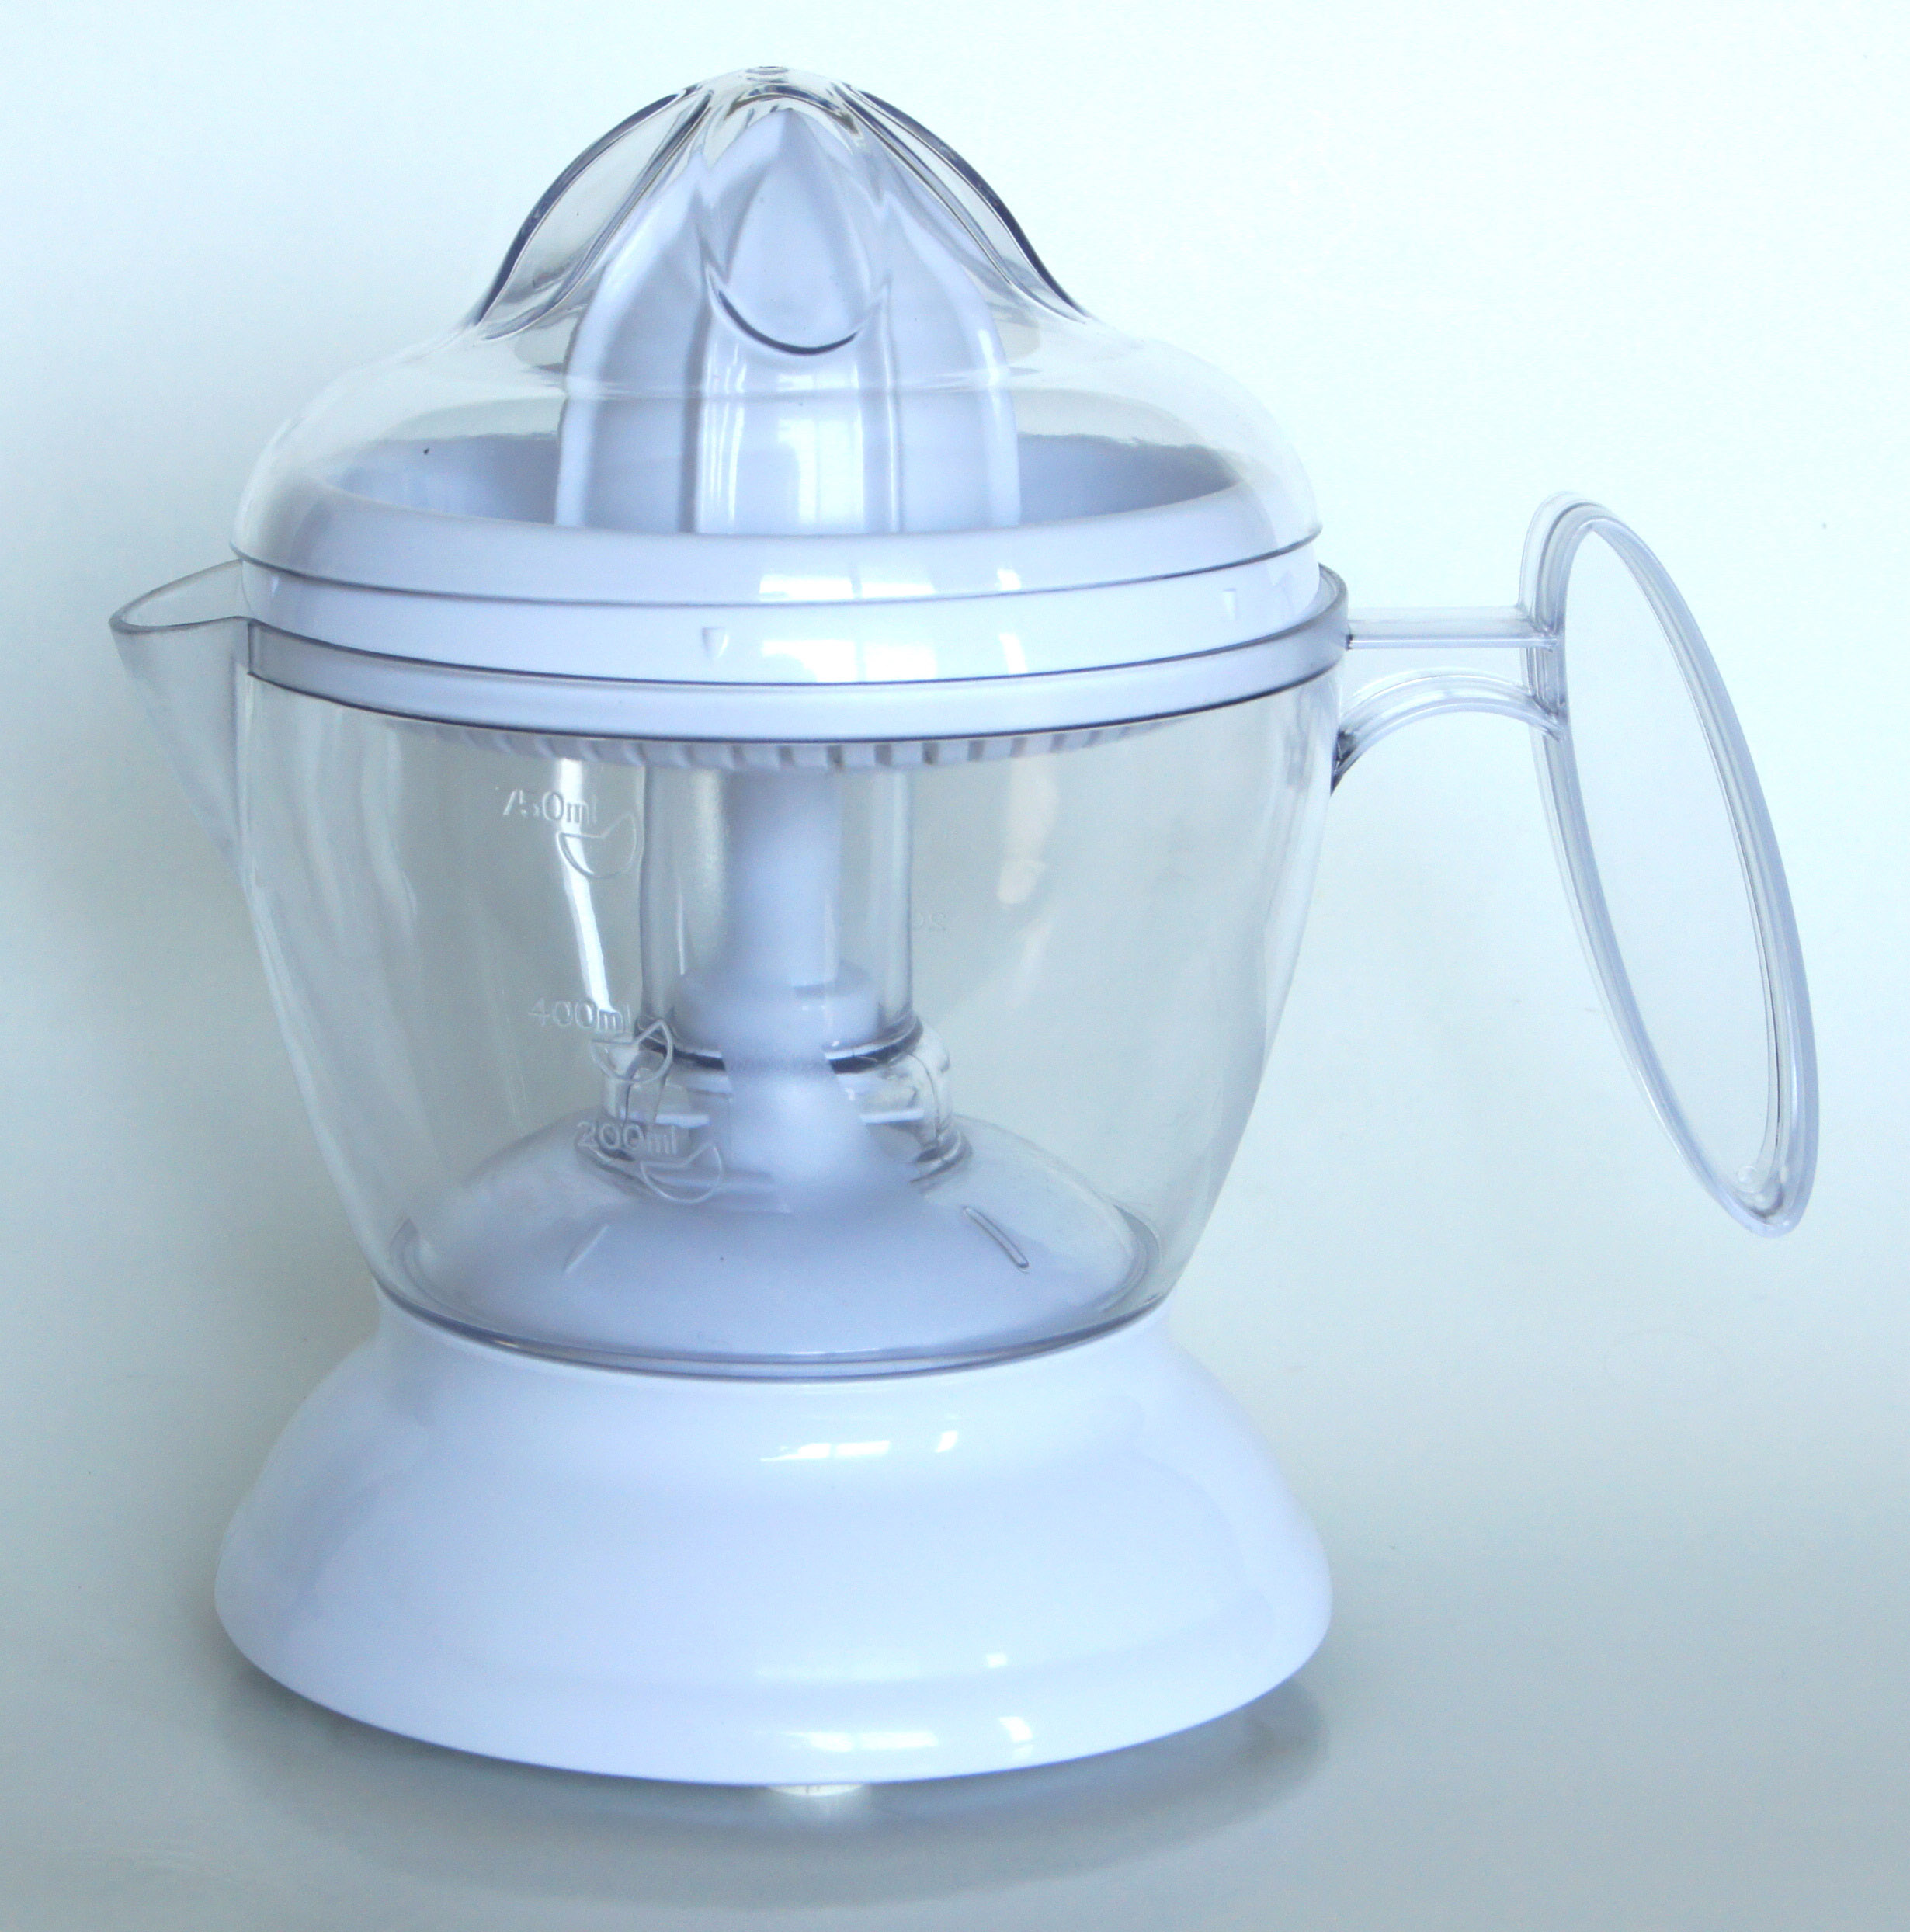 Magic Citrus Juicer ~ In juicer blender with anti overheat device ml